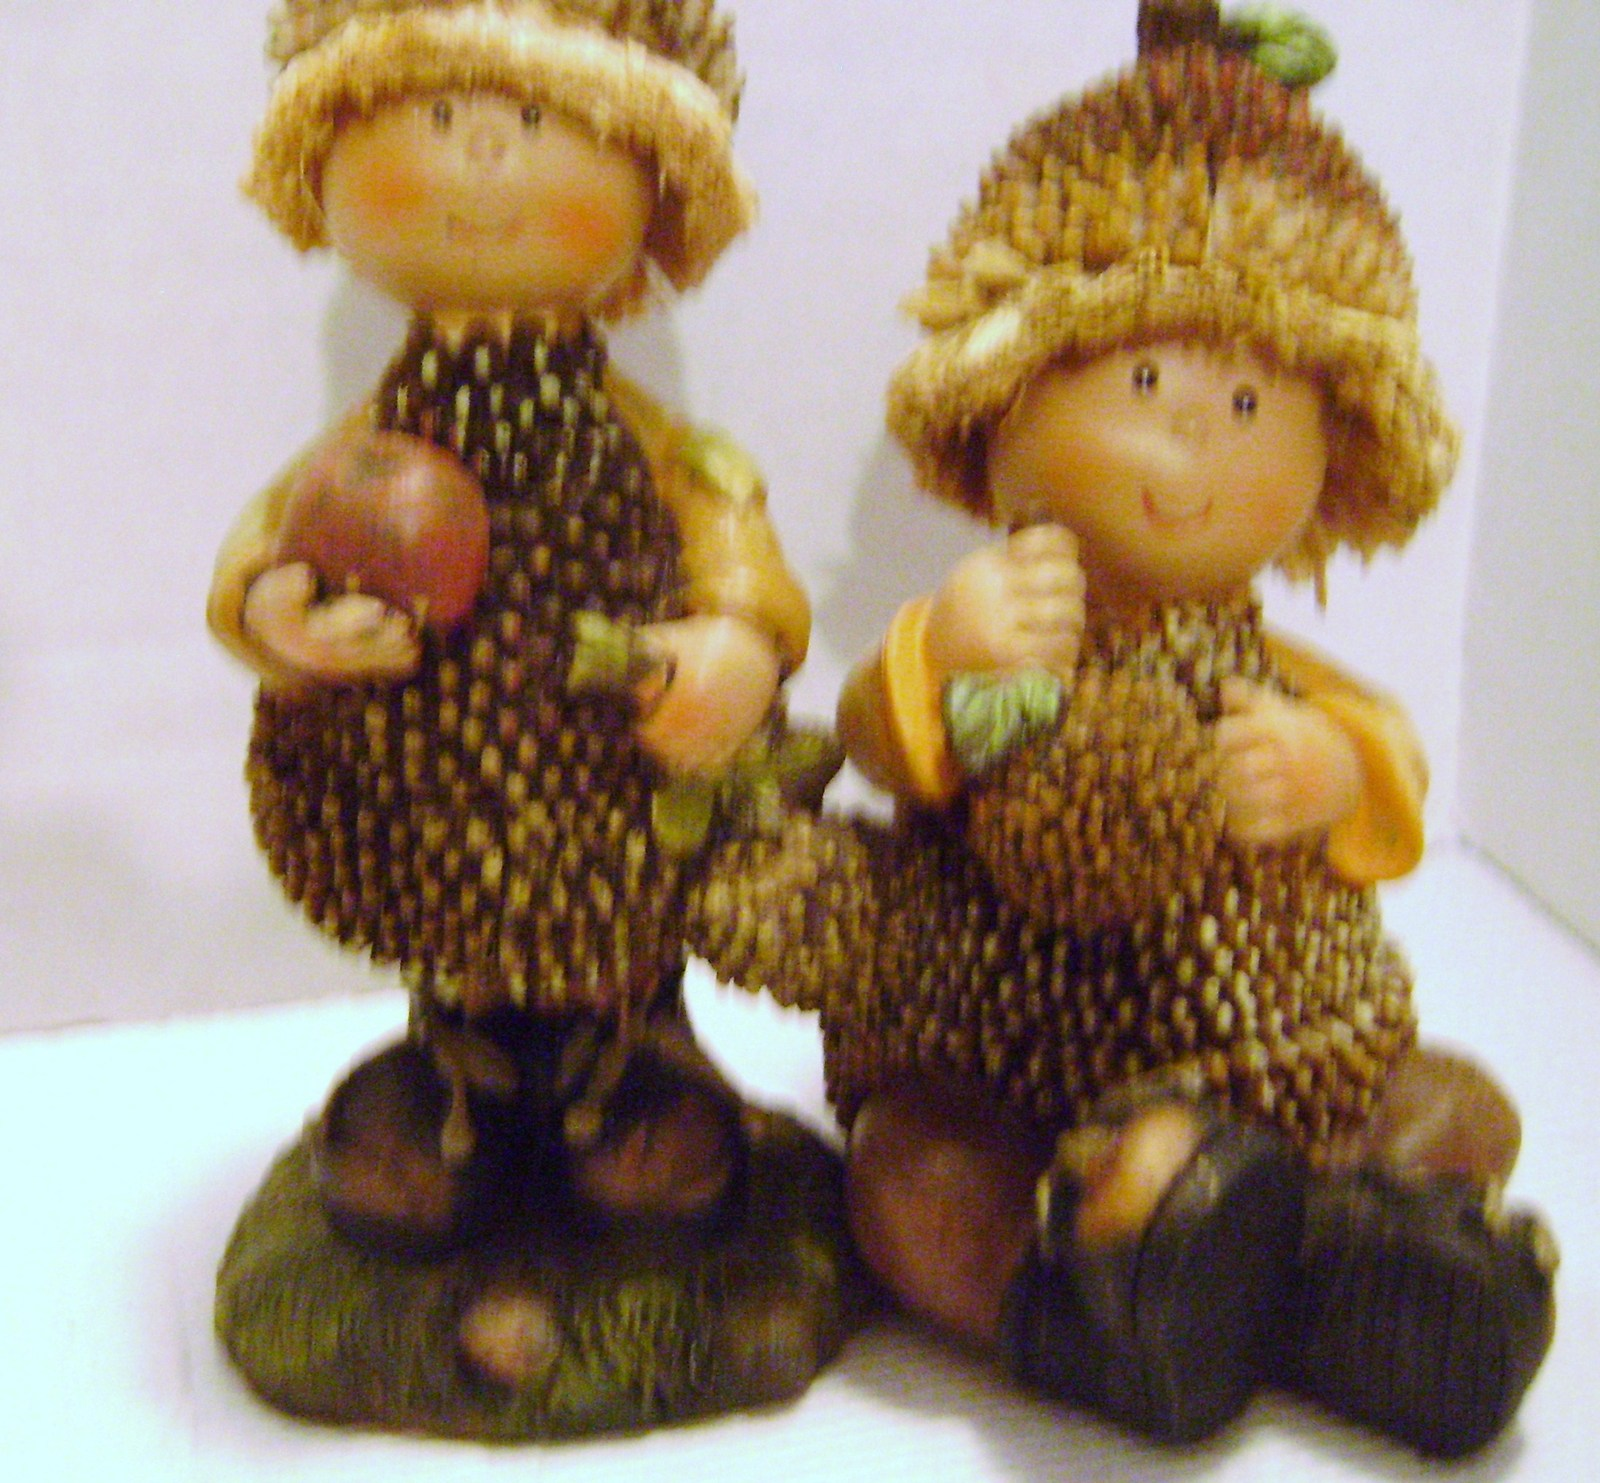 Sweet Gum Ball Acorn People Collectibles And 50 Similar Items